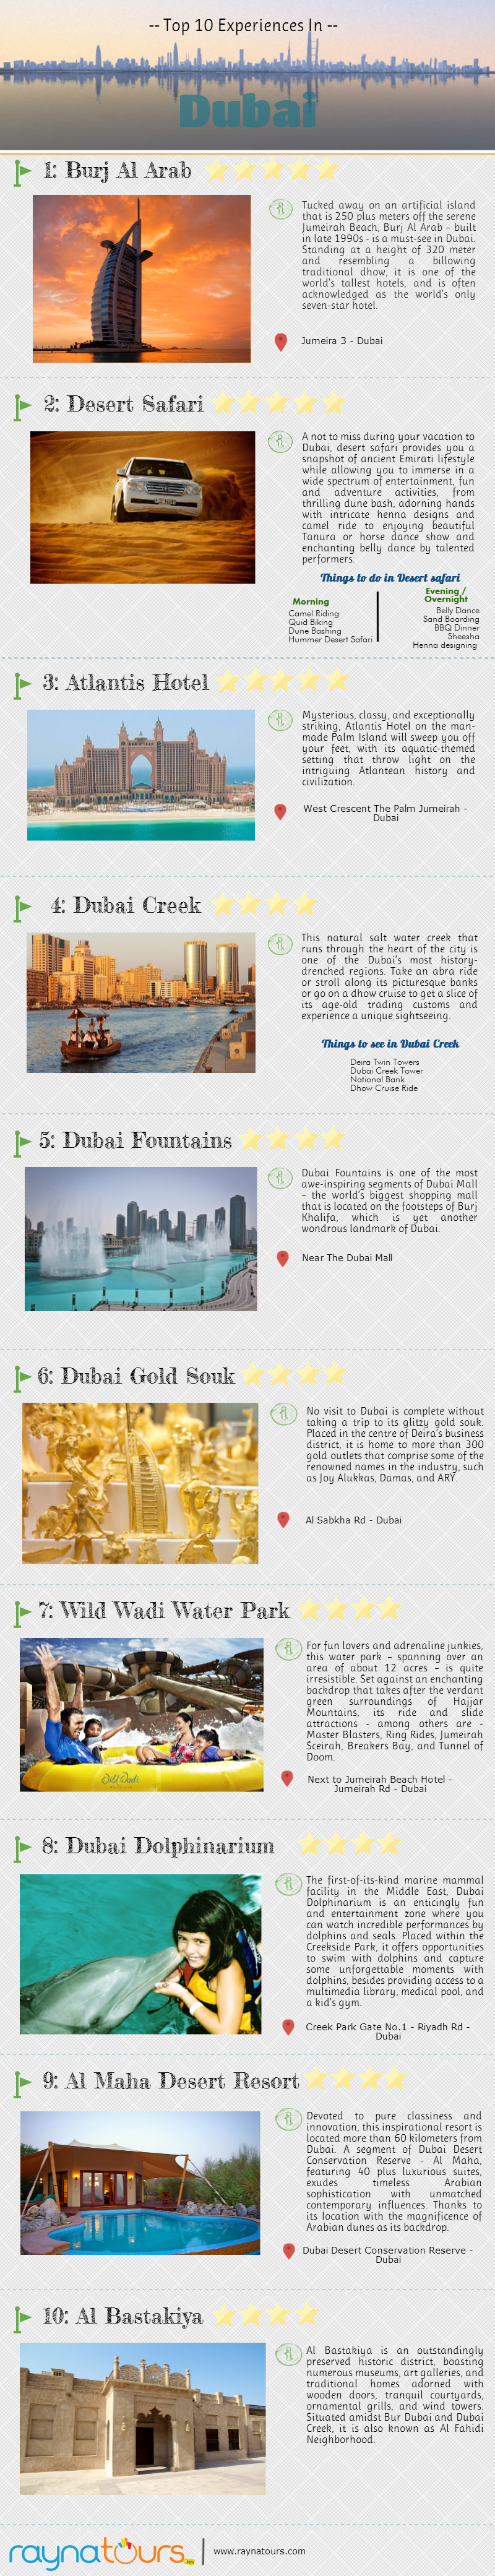 Infographic: Top 10 Experiences In Dubai #infographic